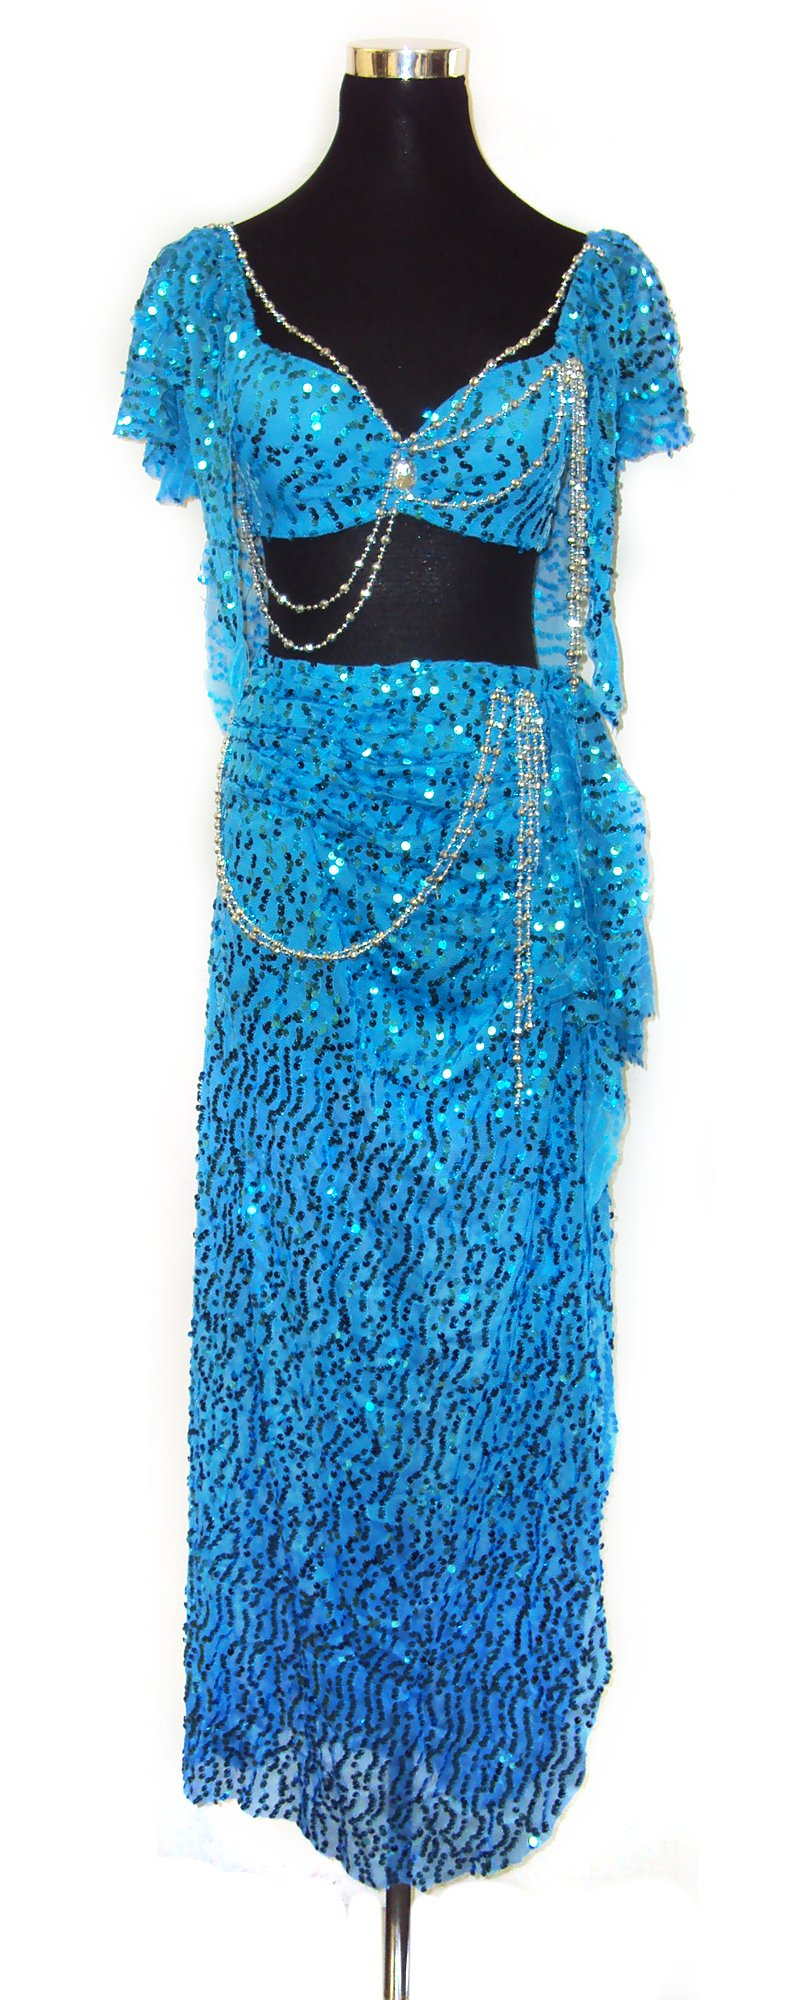 Belly Dancer Glitter Bra Top & Hip Belt Skirt Harem Costume Set --Blue 34 A,B by Belly Dance Costume